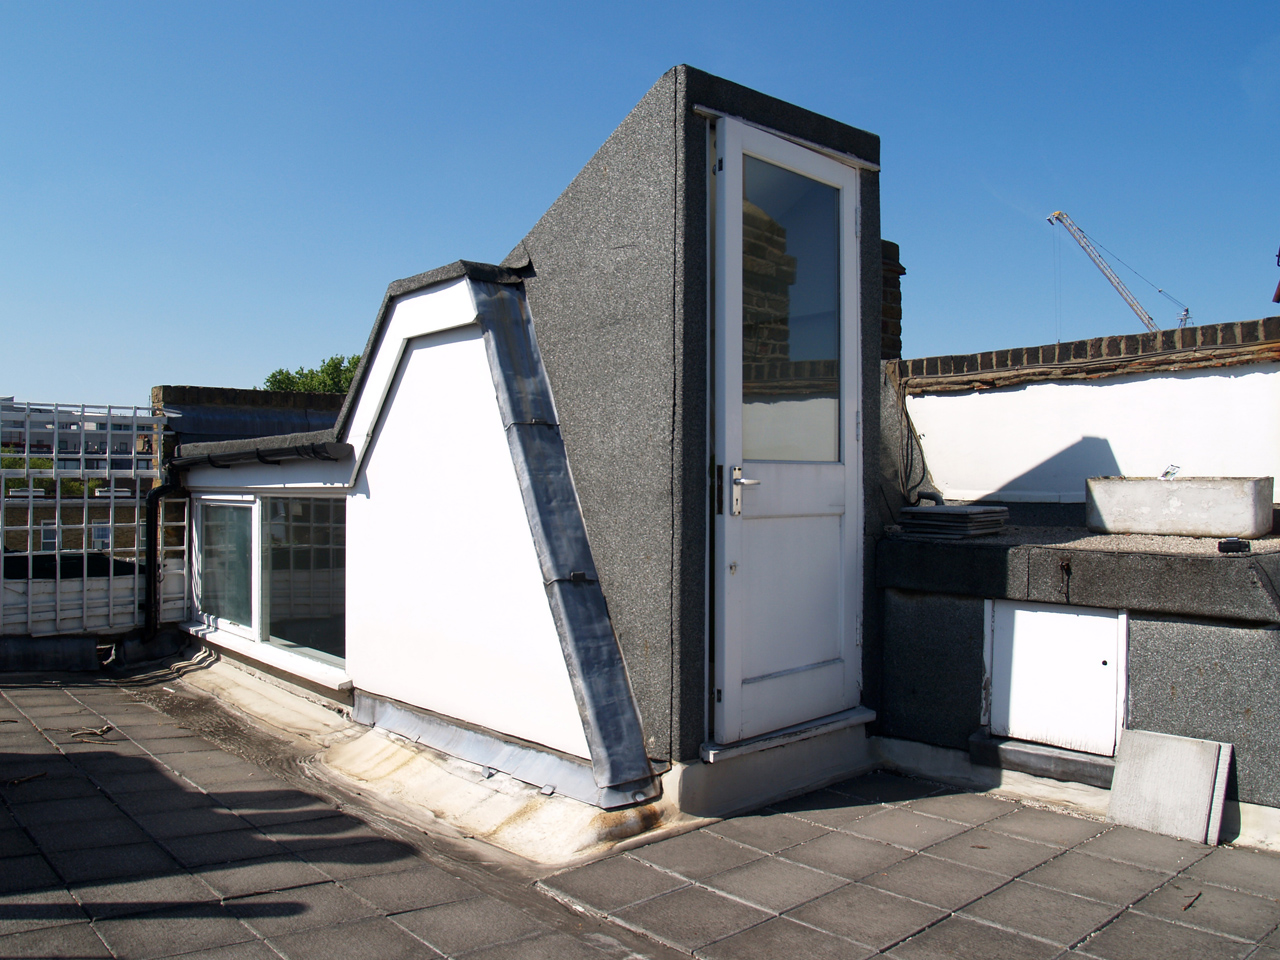 Roof terrace - before